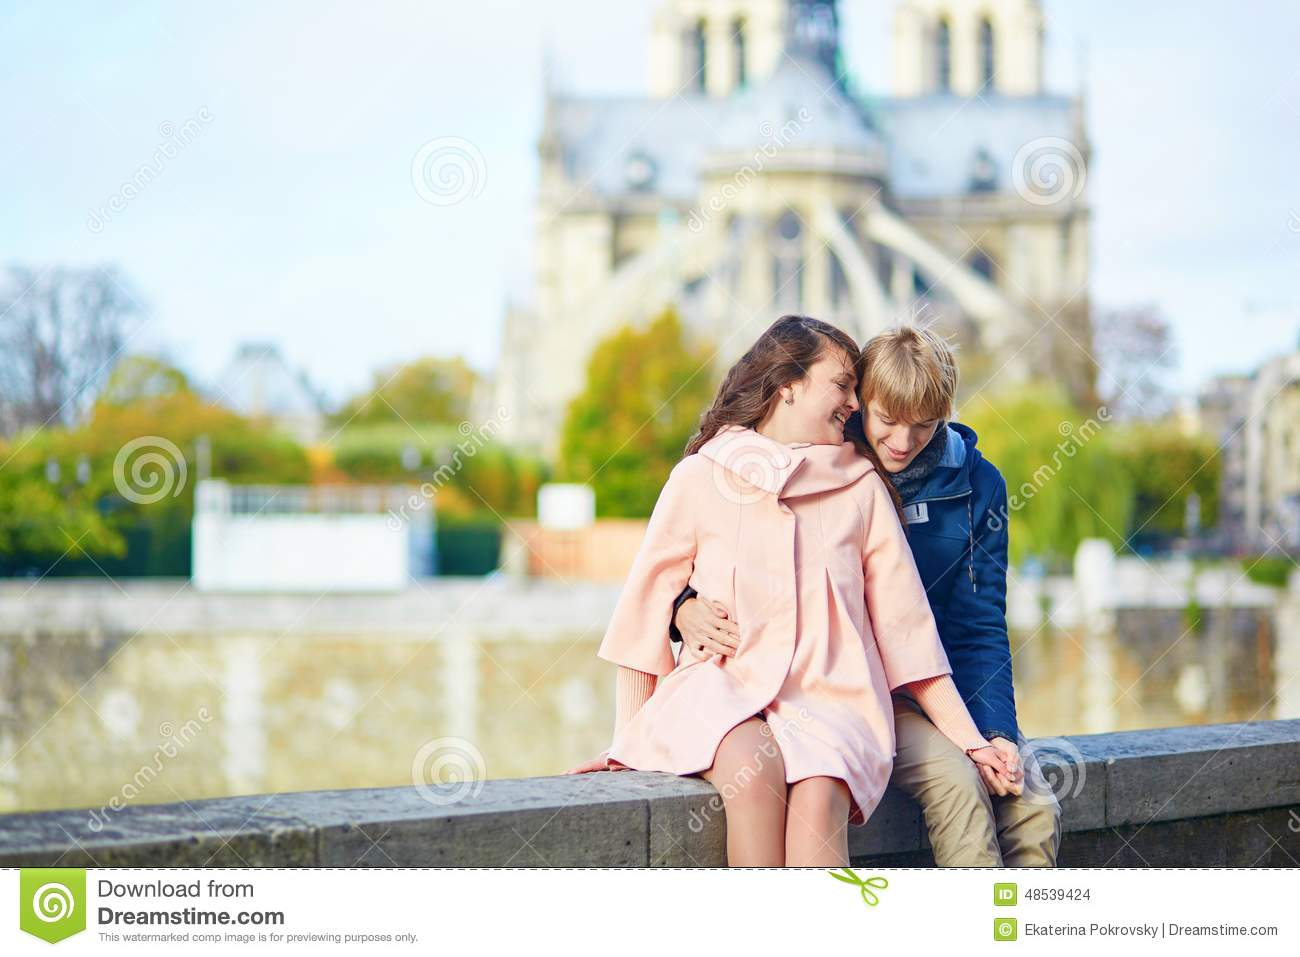 notre dame online dating Meet notre dame de lourdes singles online & chat in the forums dhu is a 100% free dating site to find personals & casual encounters in notre dame de lourdes.